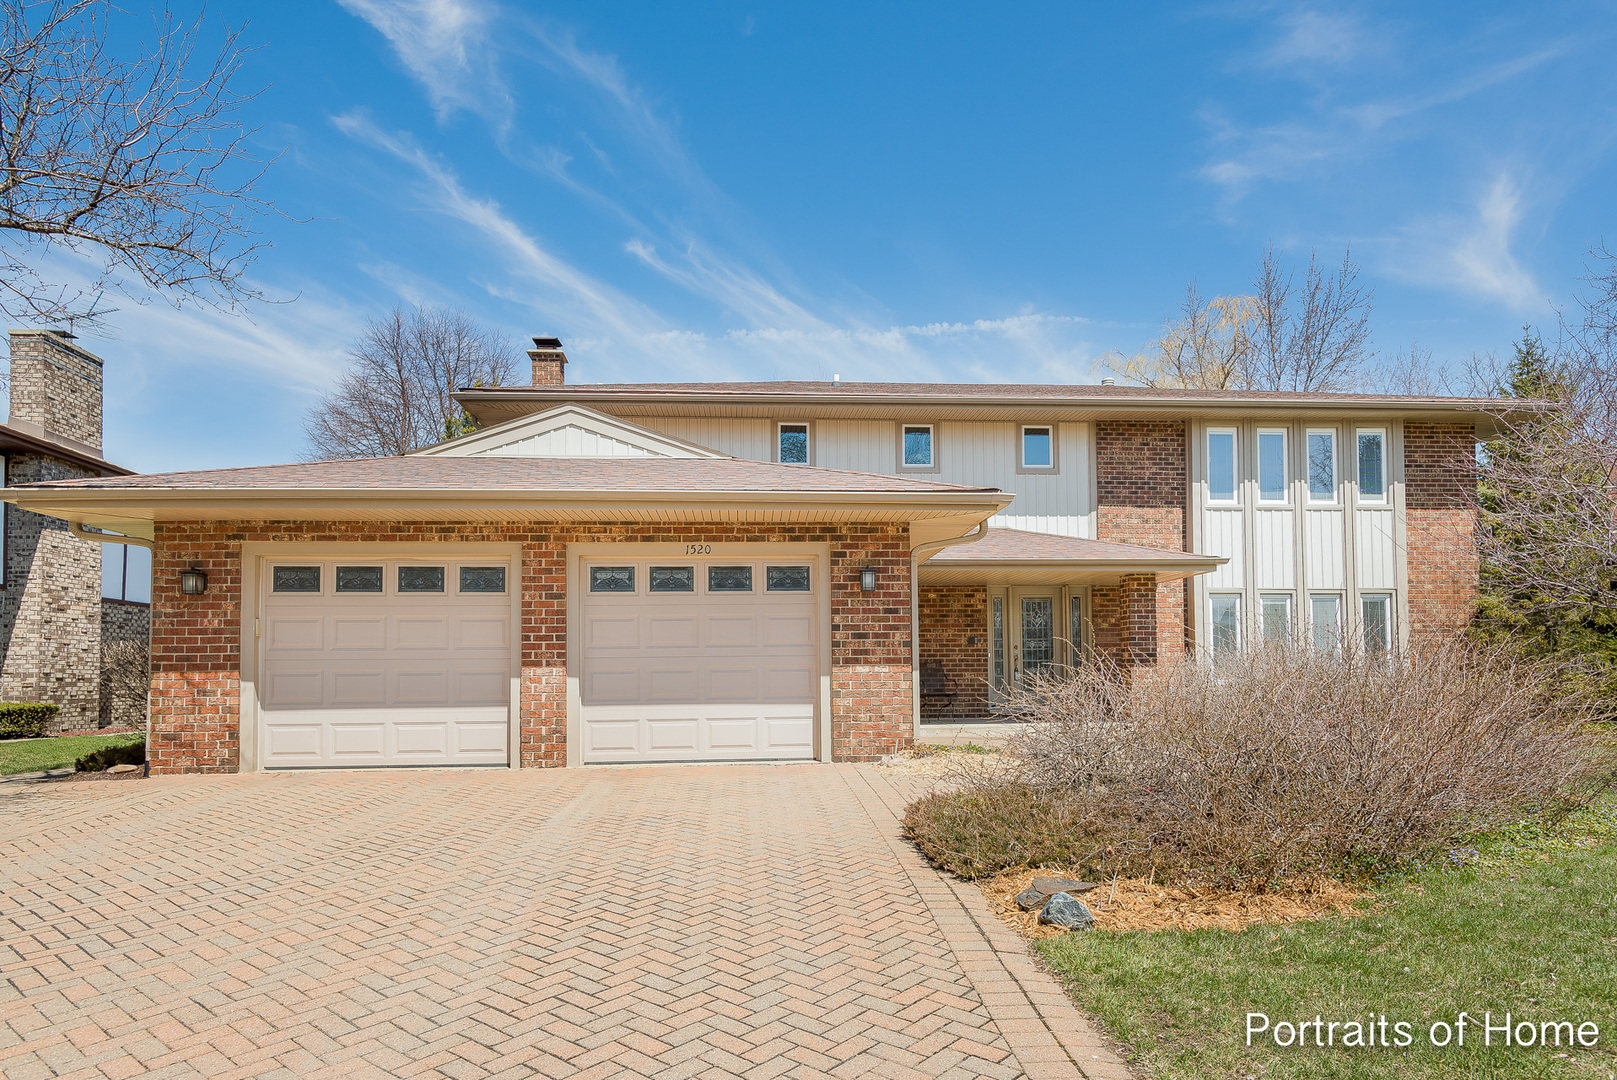 1520 Petersham Lane, Schaumburg in Cook County, IL 60173 Home for Sale